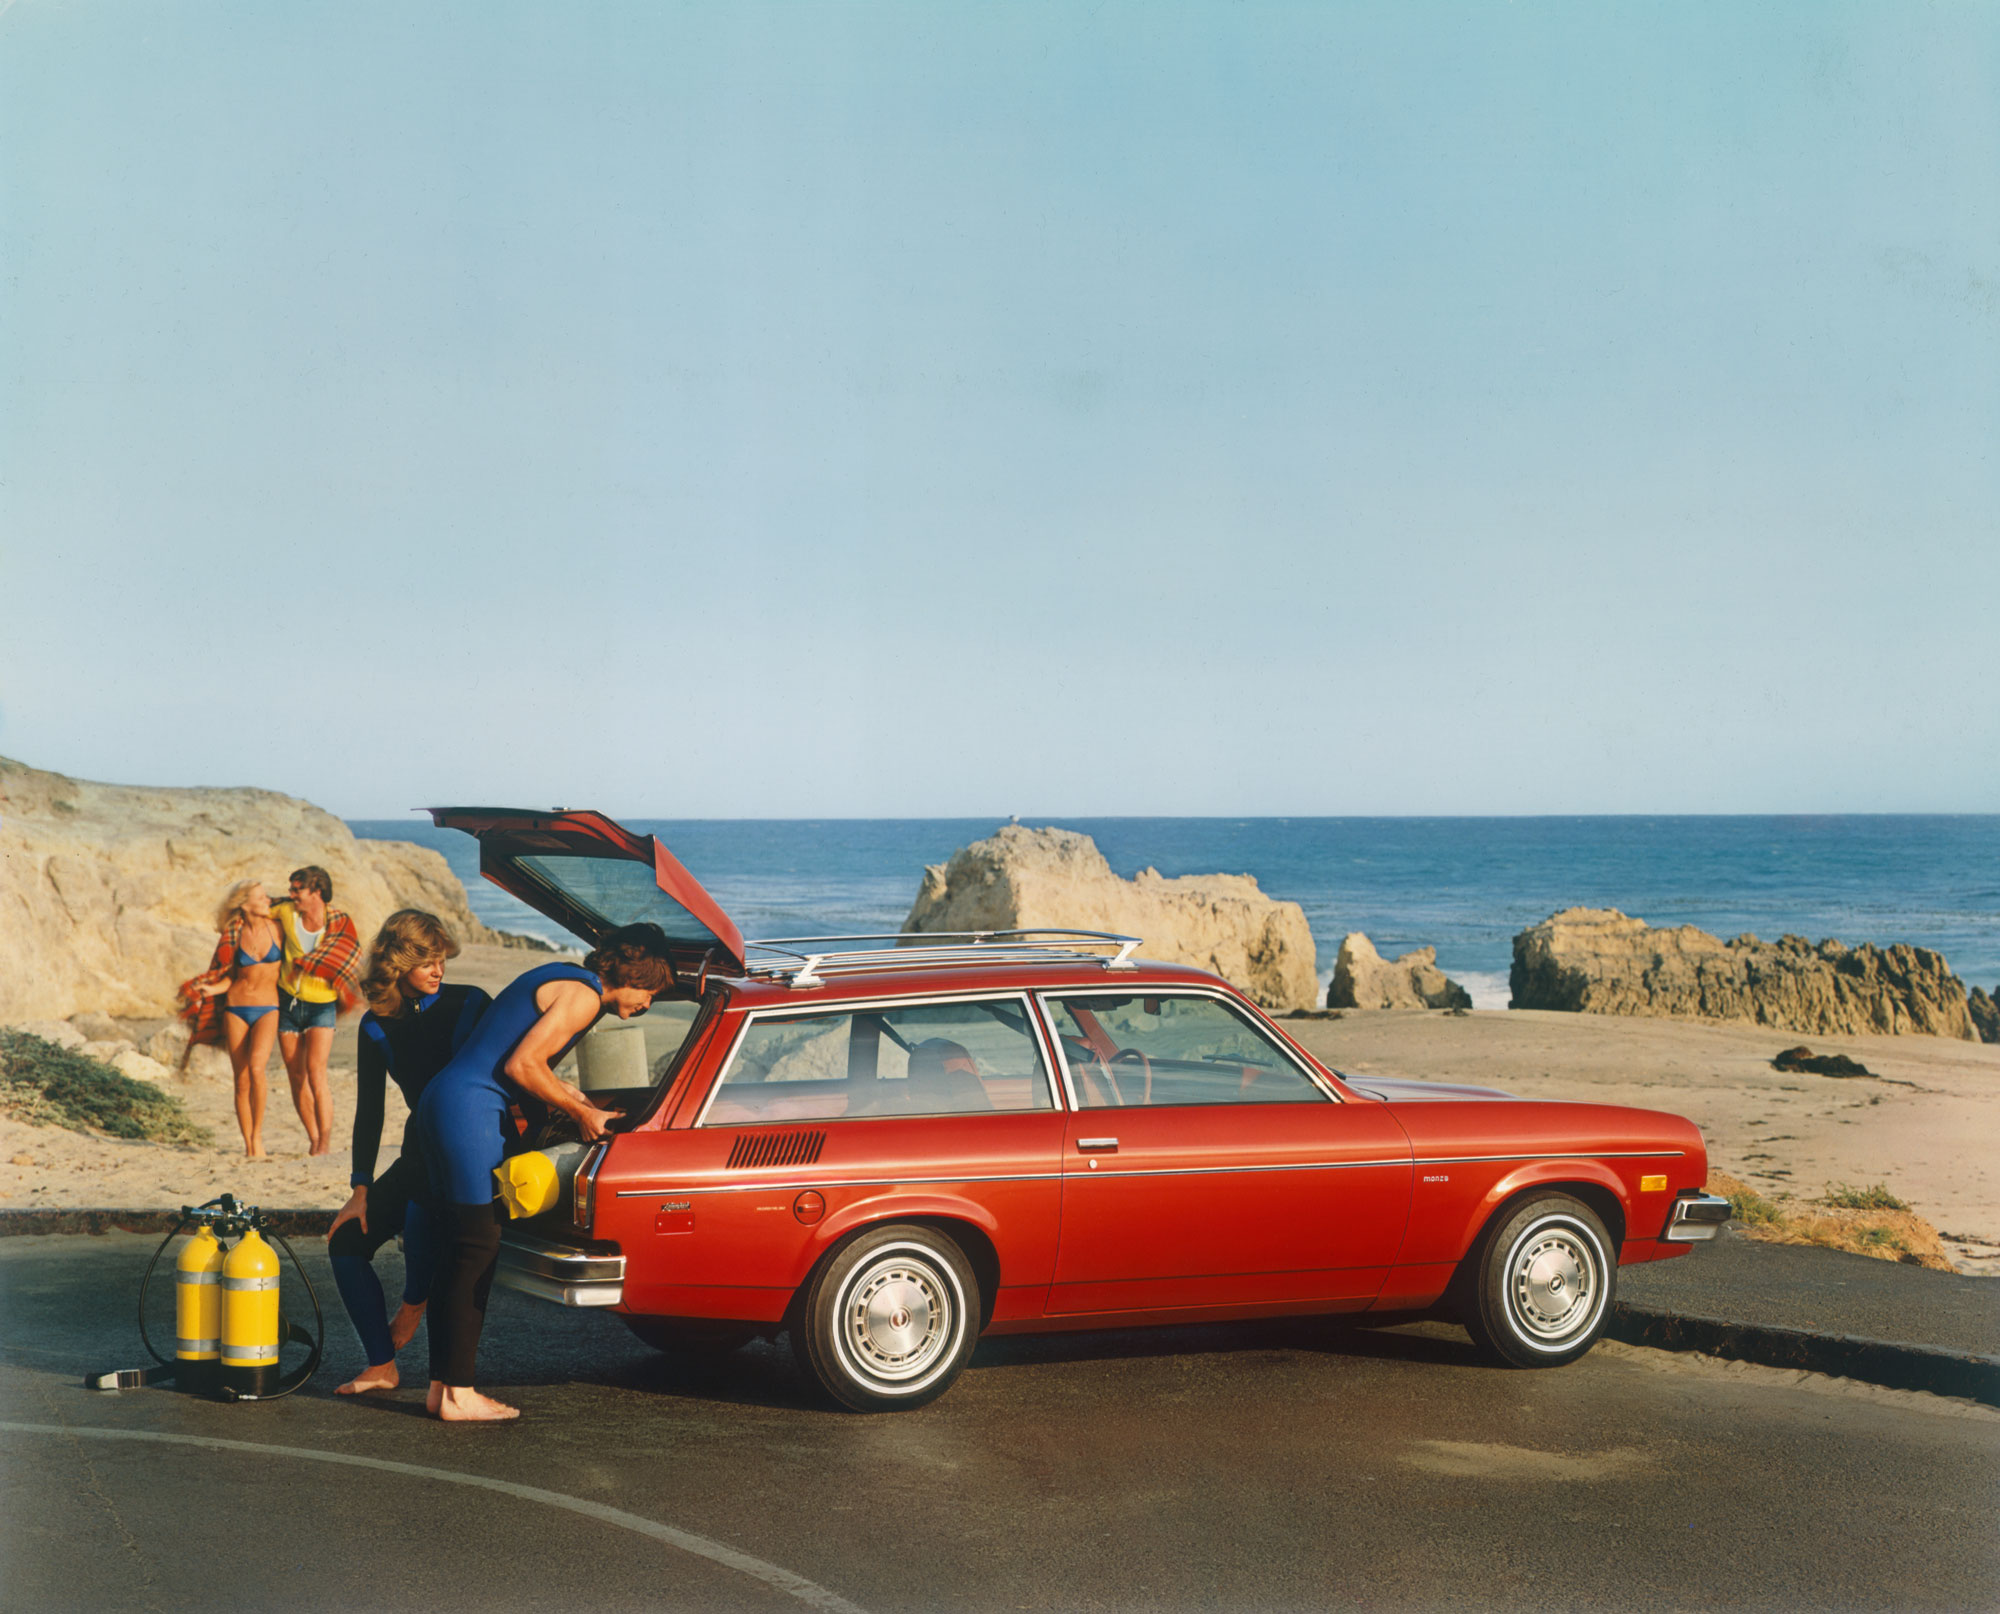 Chevrolet Monza at the beach